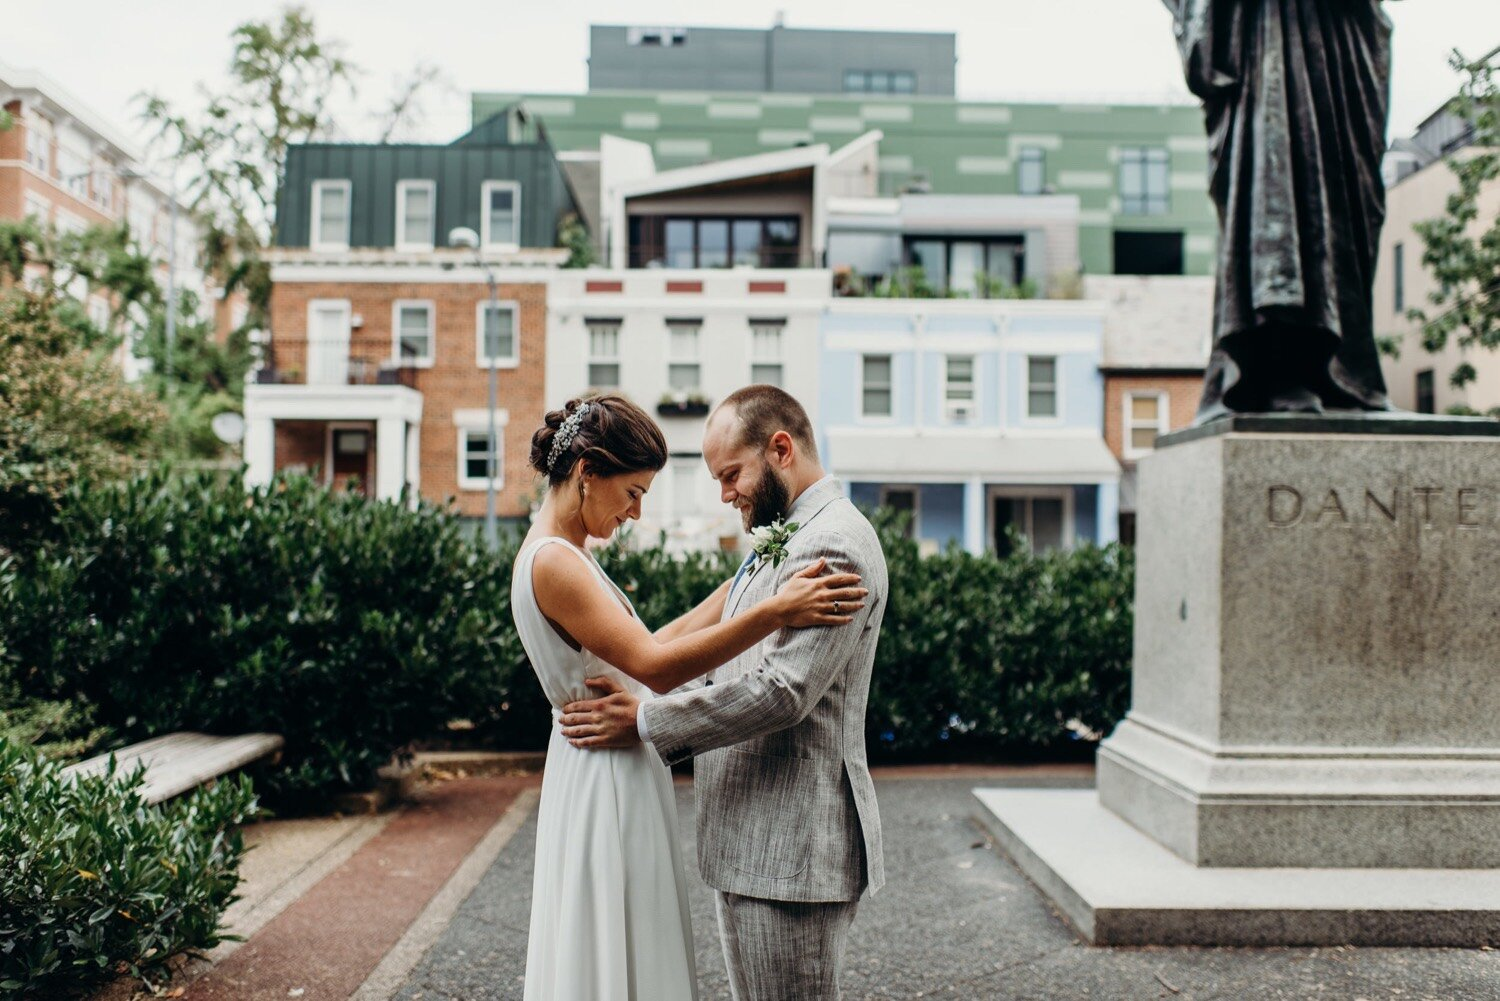 16_photographer_wedding_look_meridian_park_dc_washington_first_hill.jpg